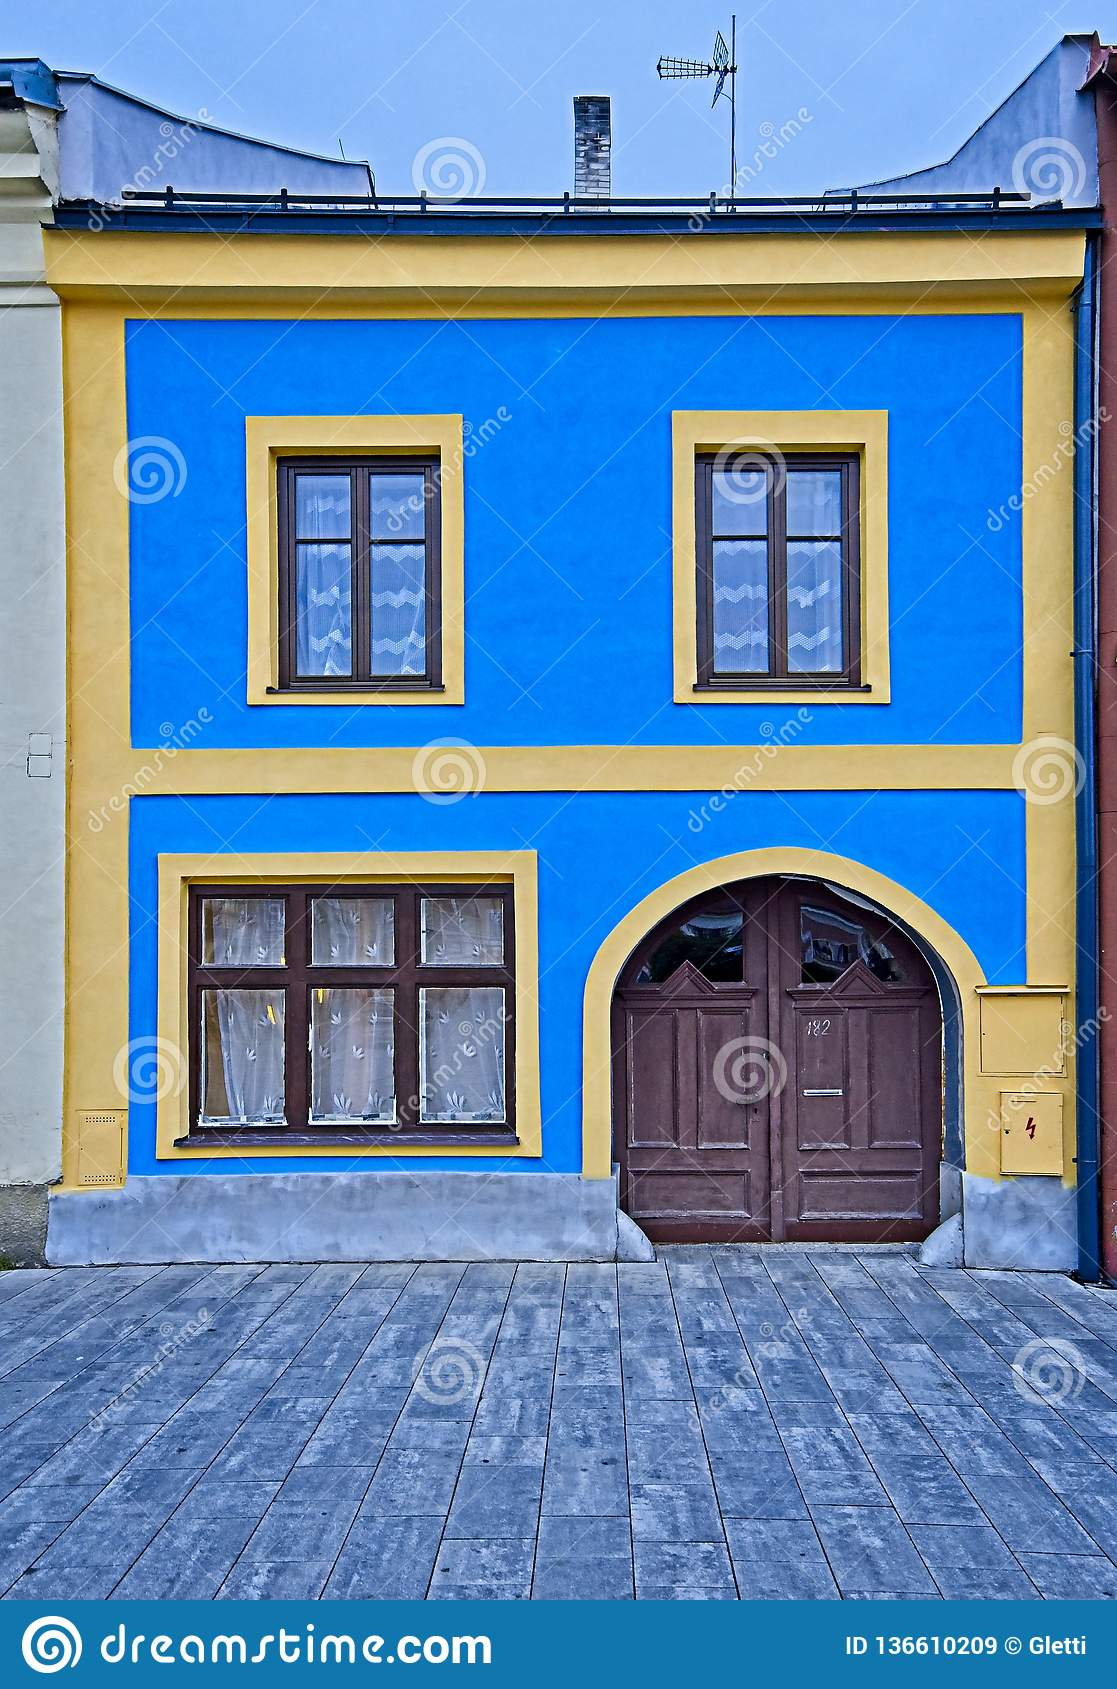 125 343 Blue Yellow House Photos Free Royalty Free Stock Photos From Dreamstime